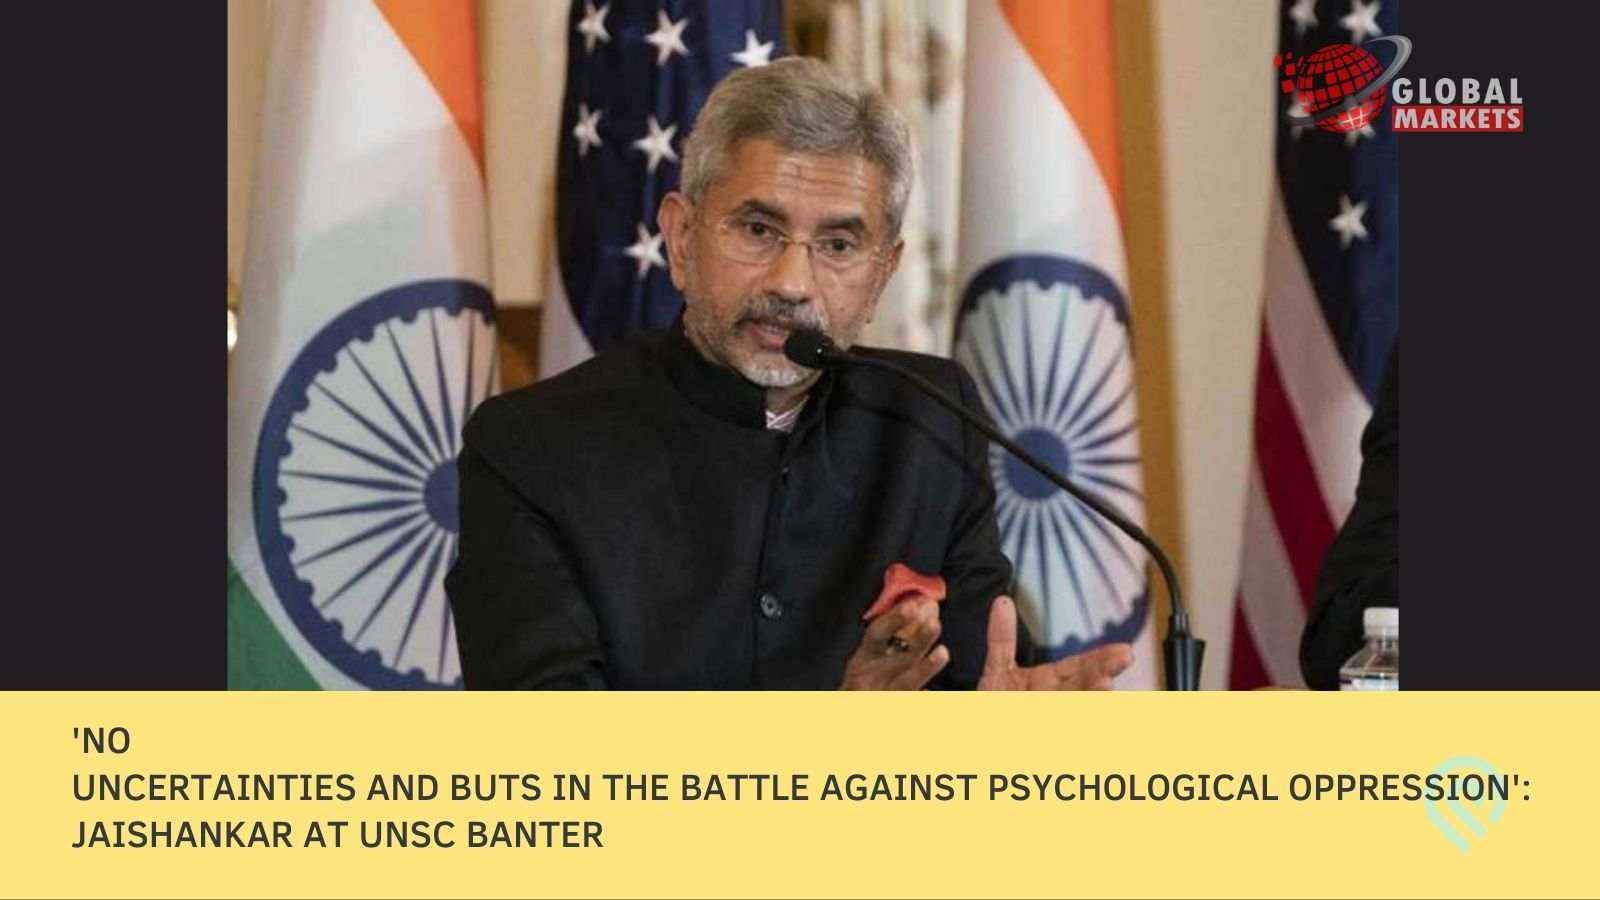 'No uncertainties and buts in the battle against psychological oppression': Jaishankar at UNSC banter